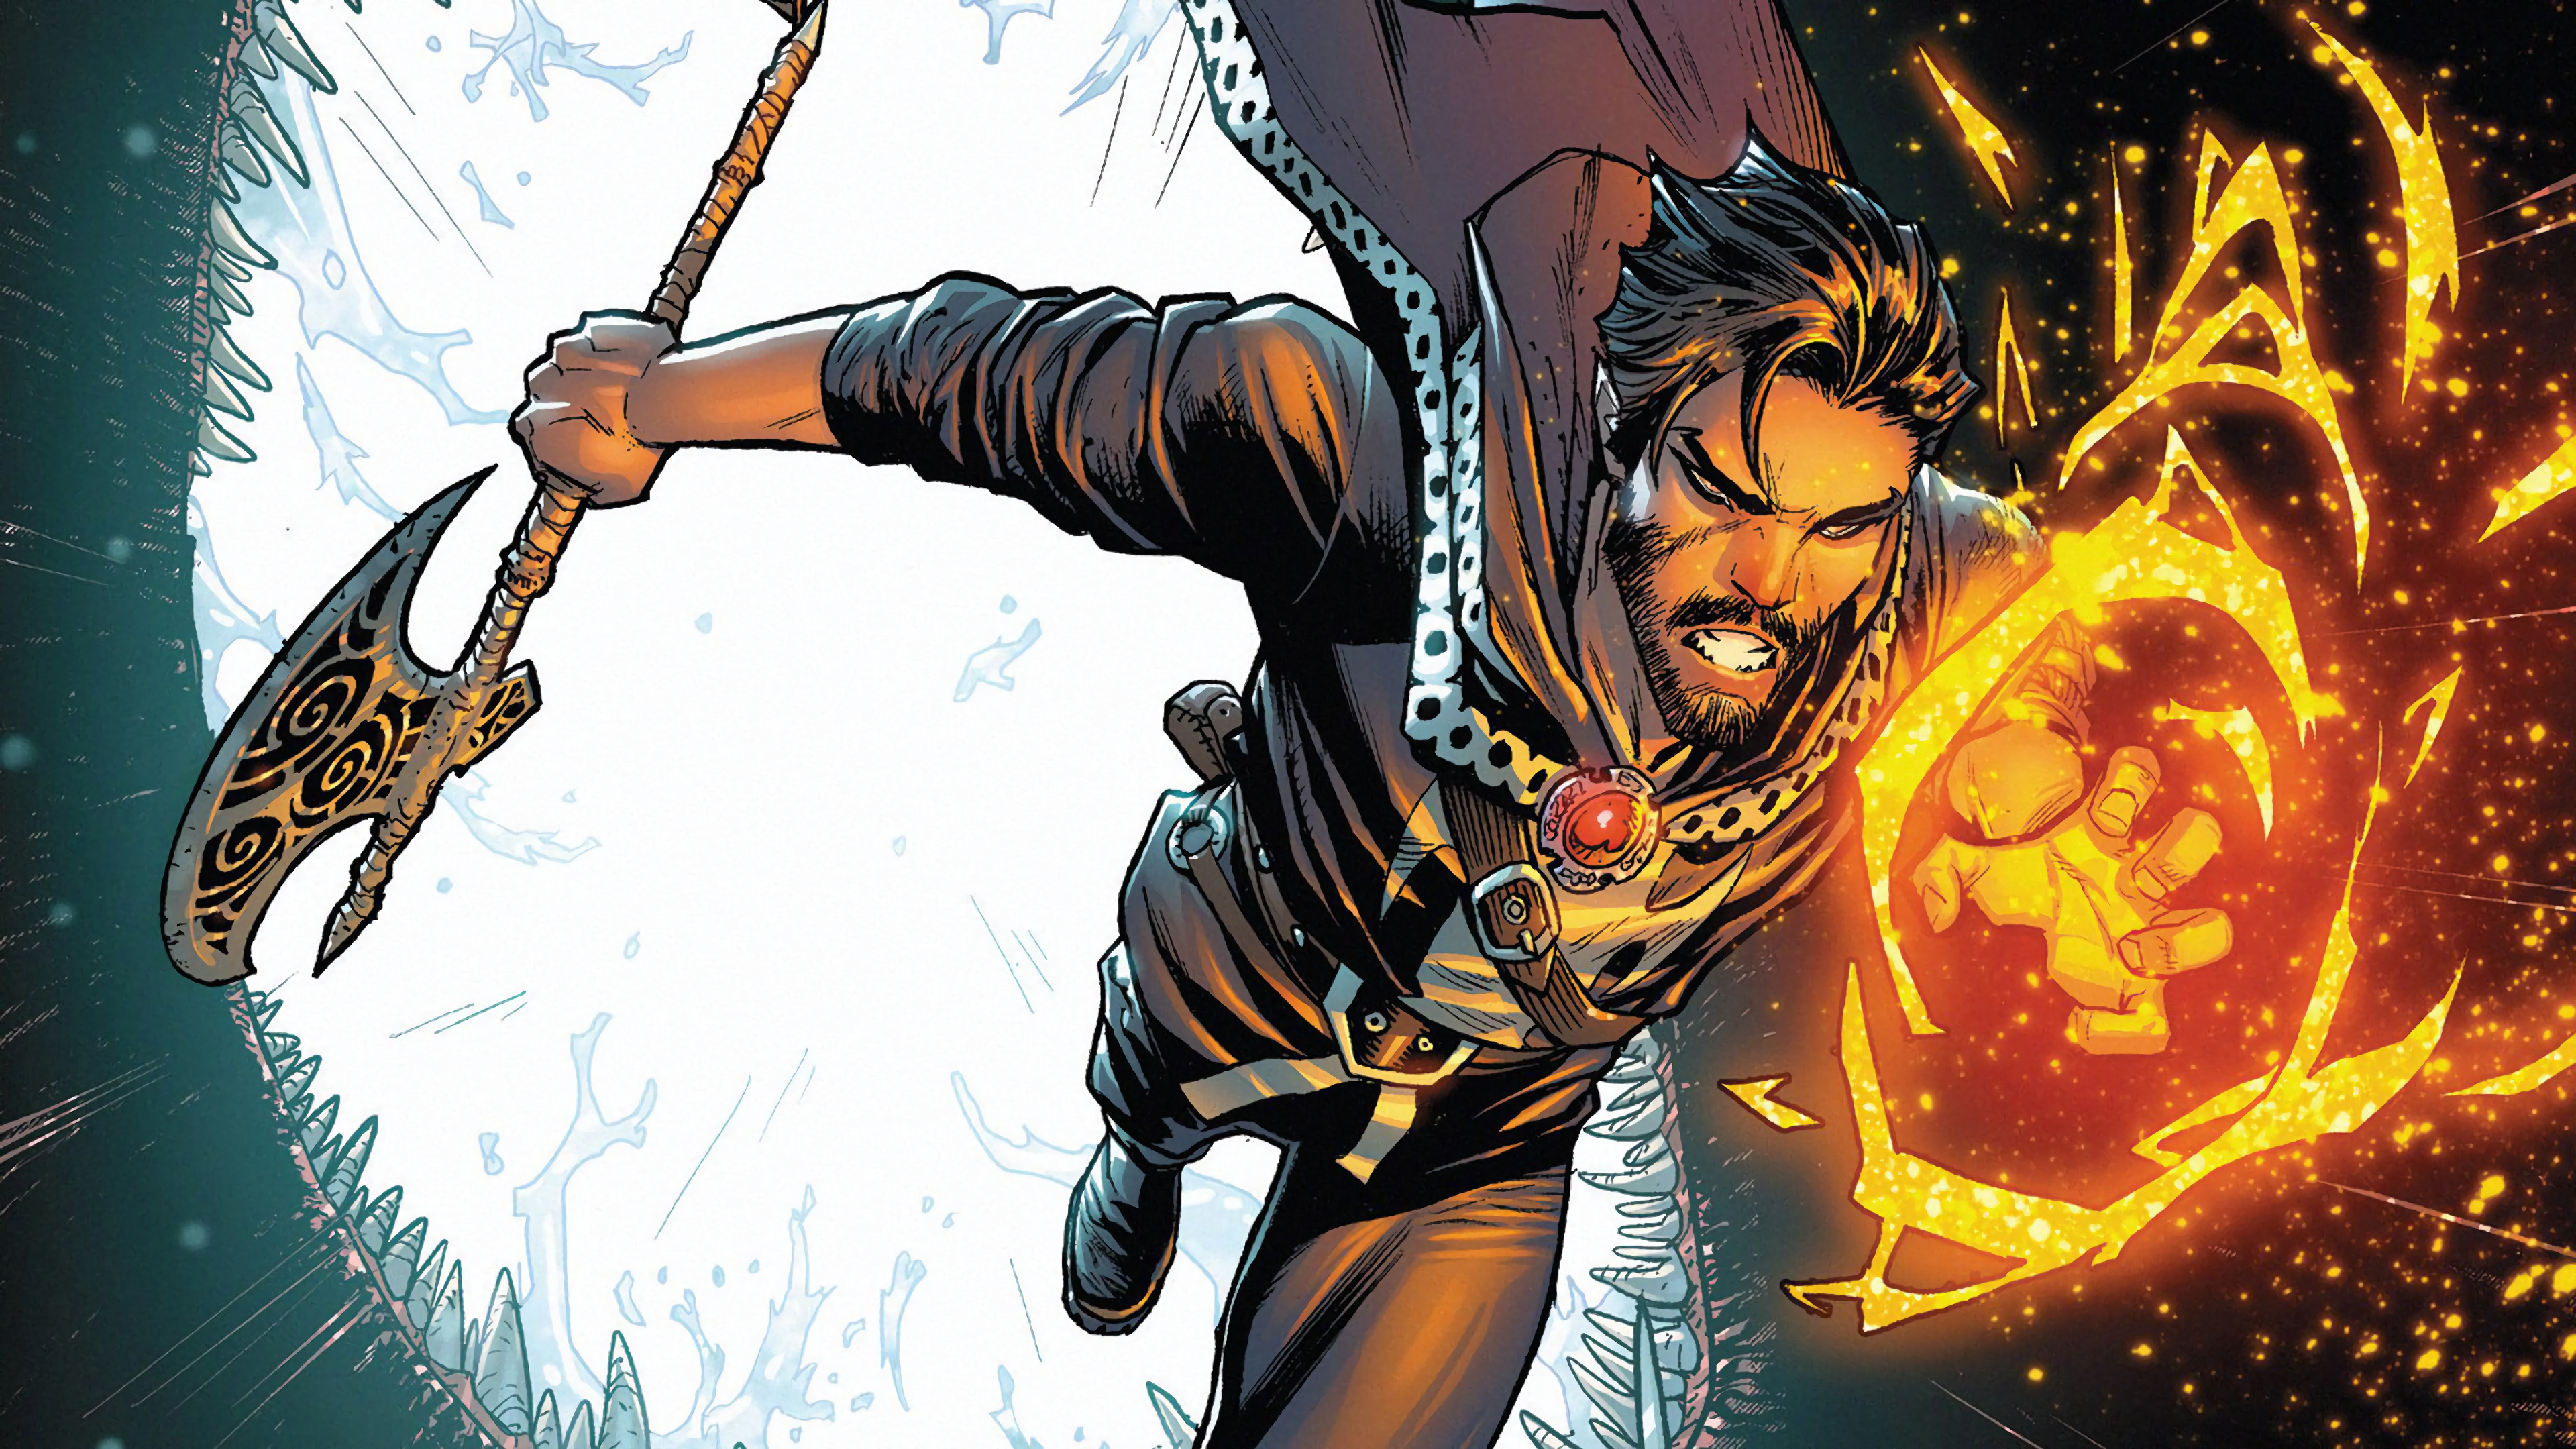 doctor strange marvel comics 4k 1547507130 - Doctor Strange Marvel Comics 4K - Marvel Comics, Doctor Strange, Comics